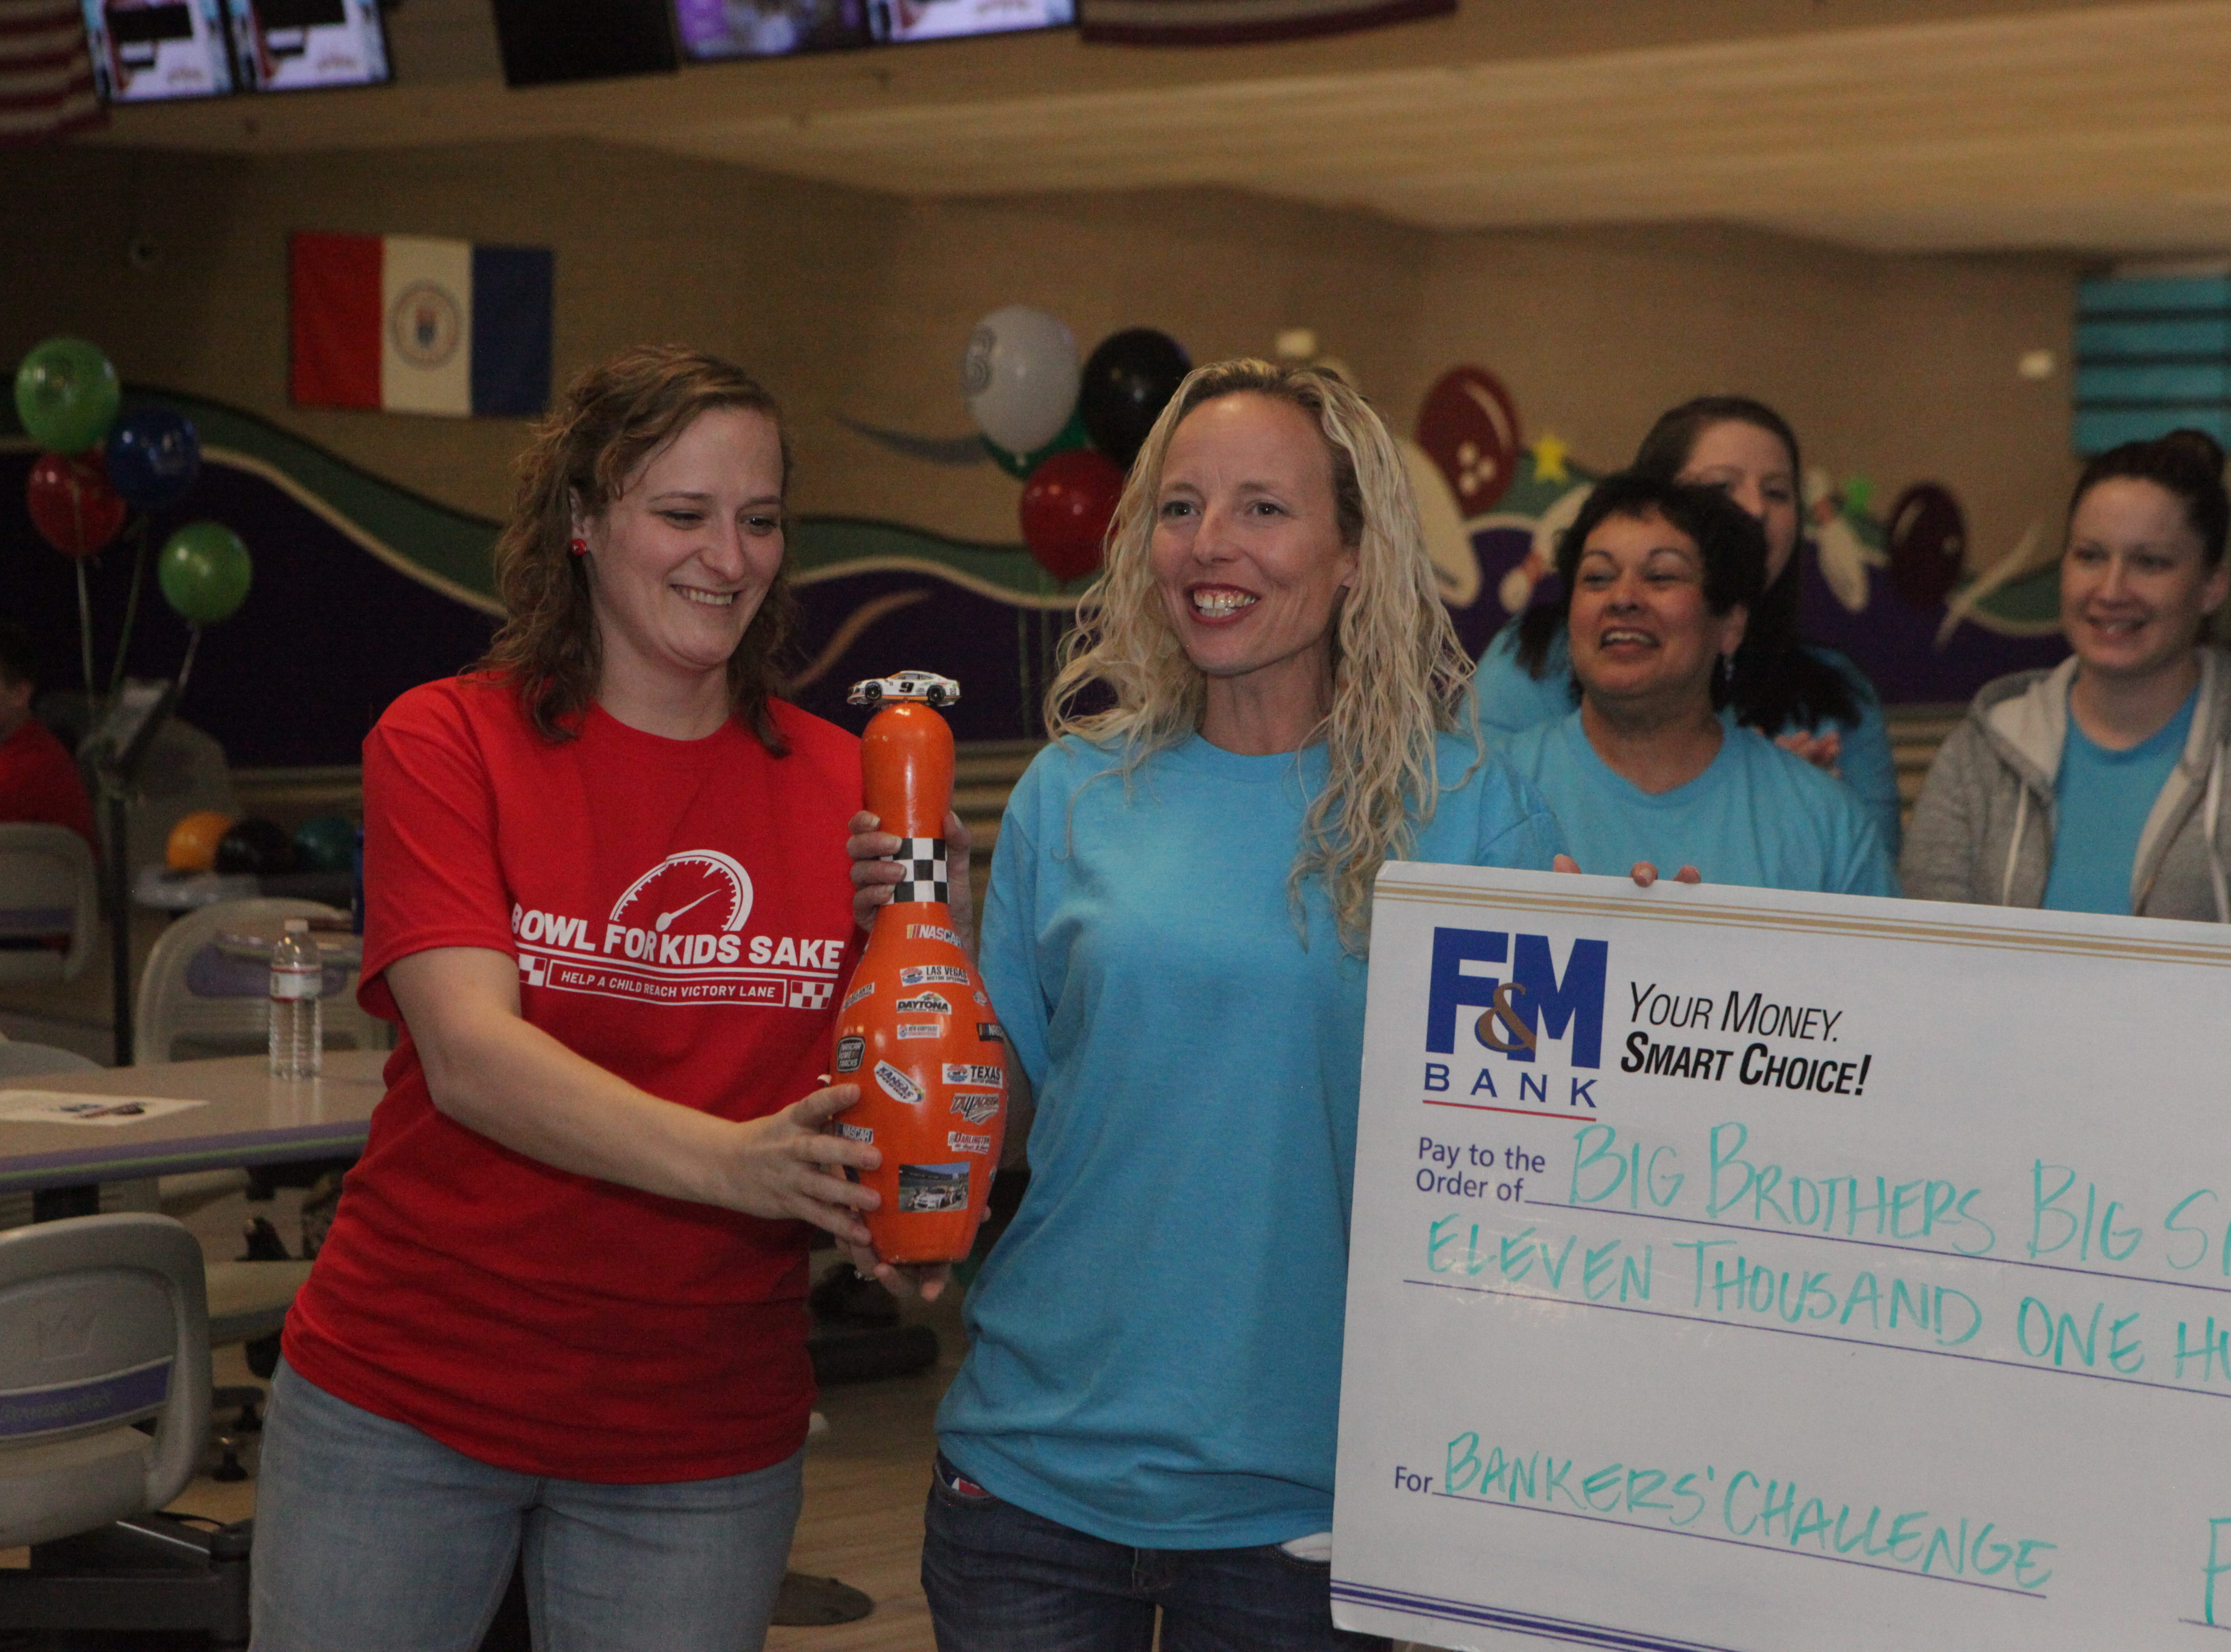 Jess Little of Big Brothers Big Sisters presents the trophy for Top Fundraising Team to Stacey Streetman and F&M Bank at the 2019 Bankers Challenge at the Pinnacle Family Entertainment Center on Tuesday, March 12, 2019.